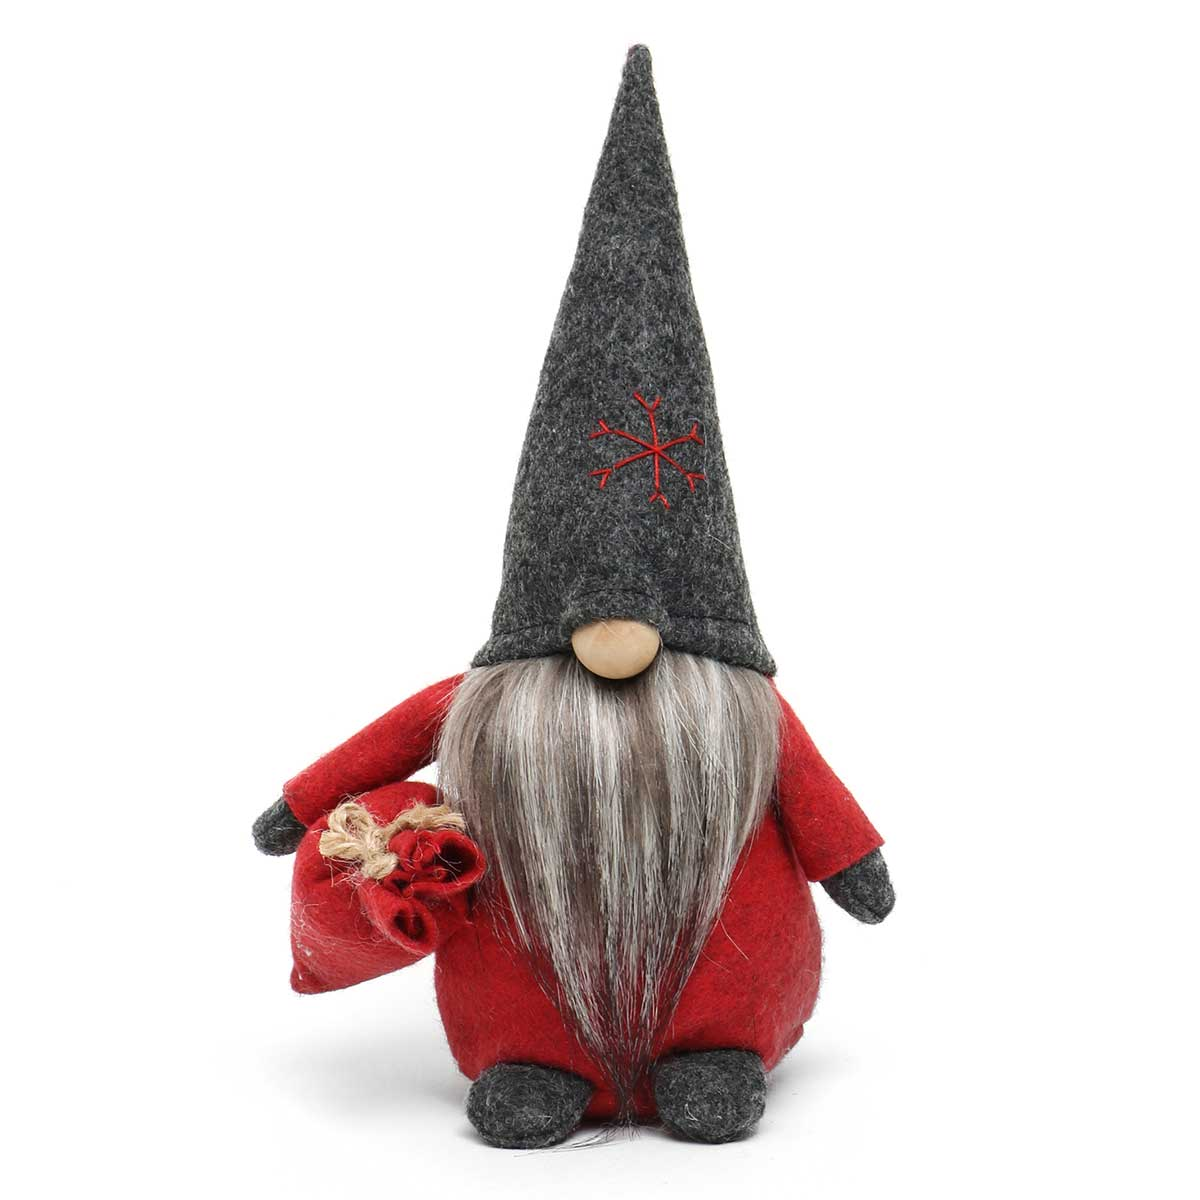 TOMTE GNOME WITH DARK GREY